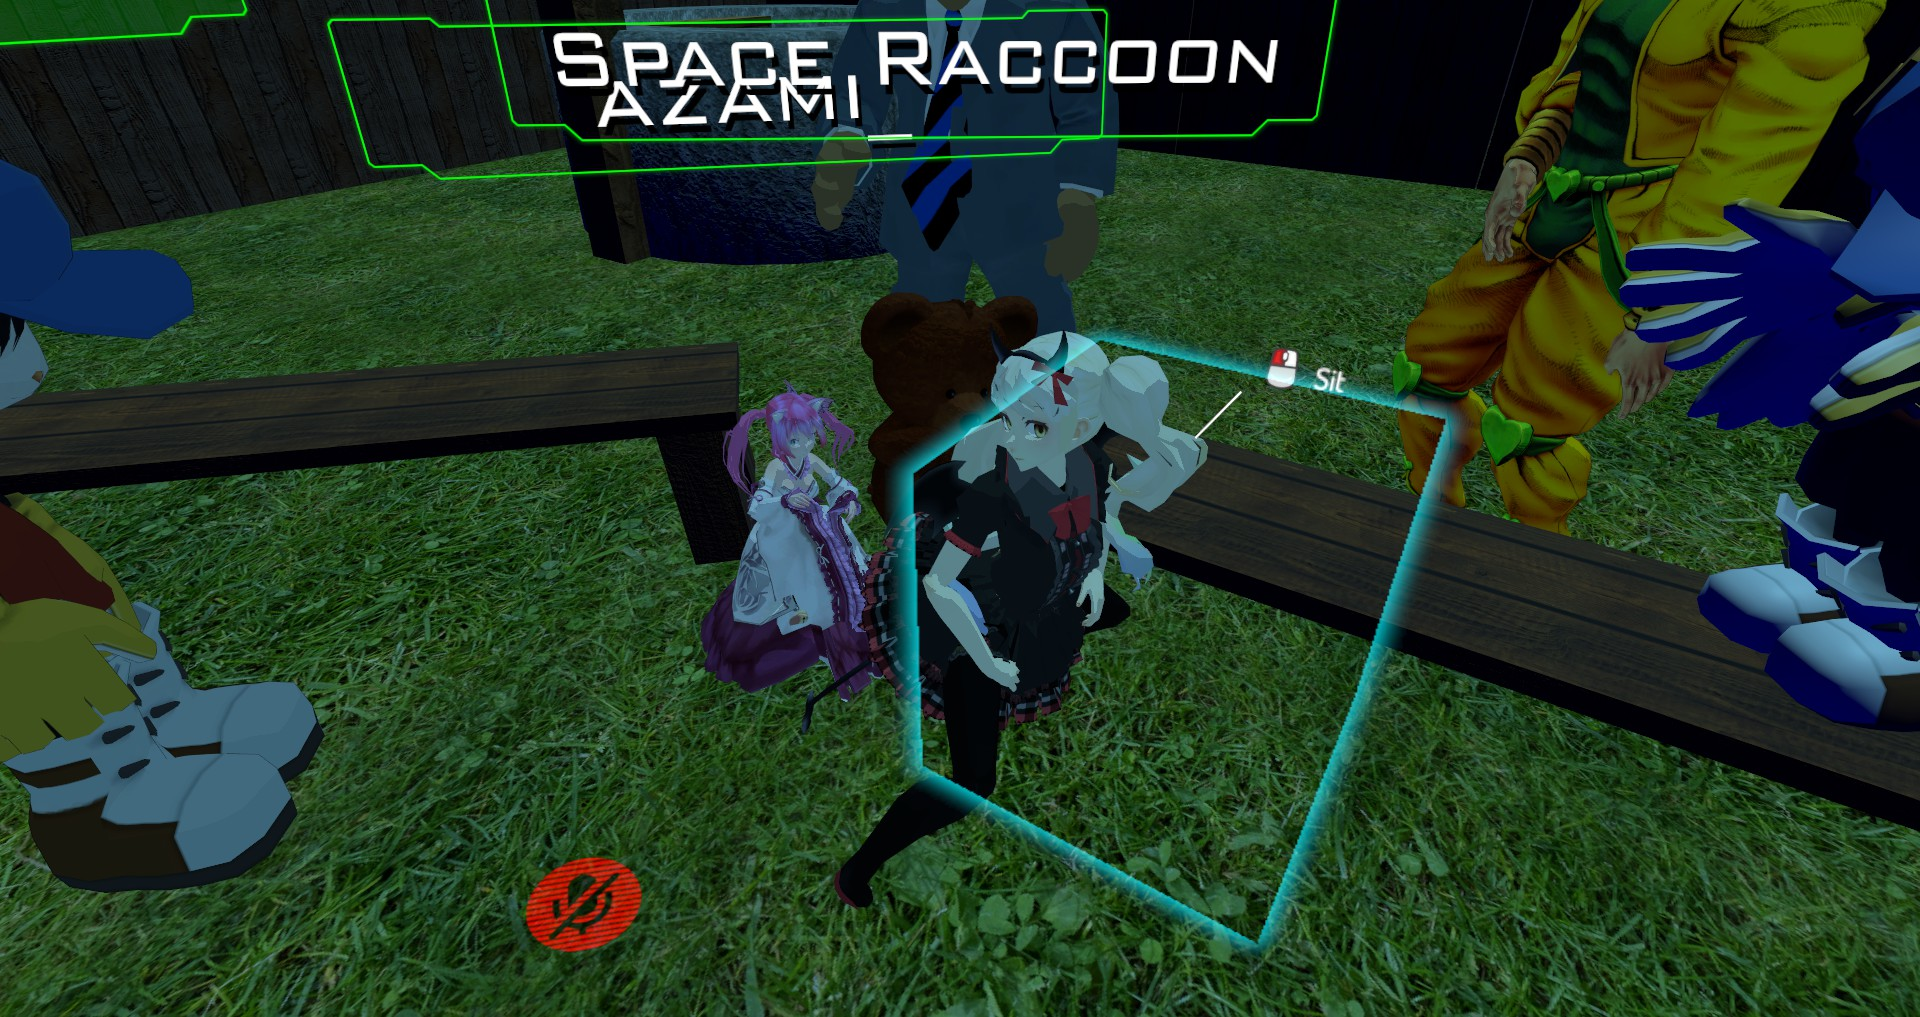 vr chat on steam